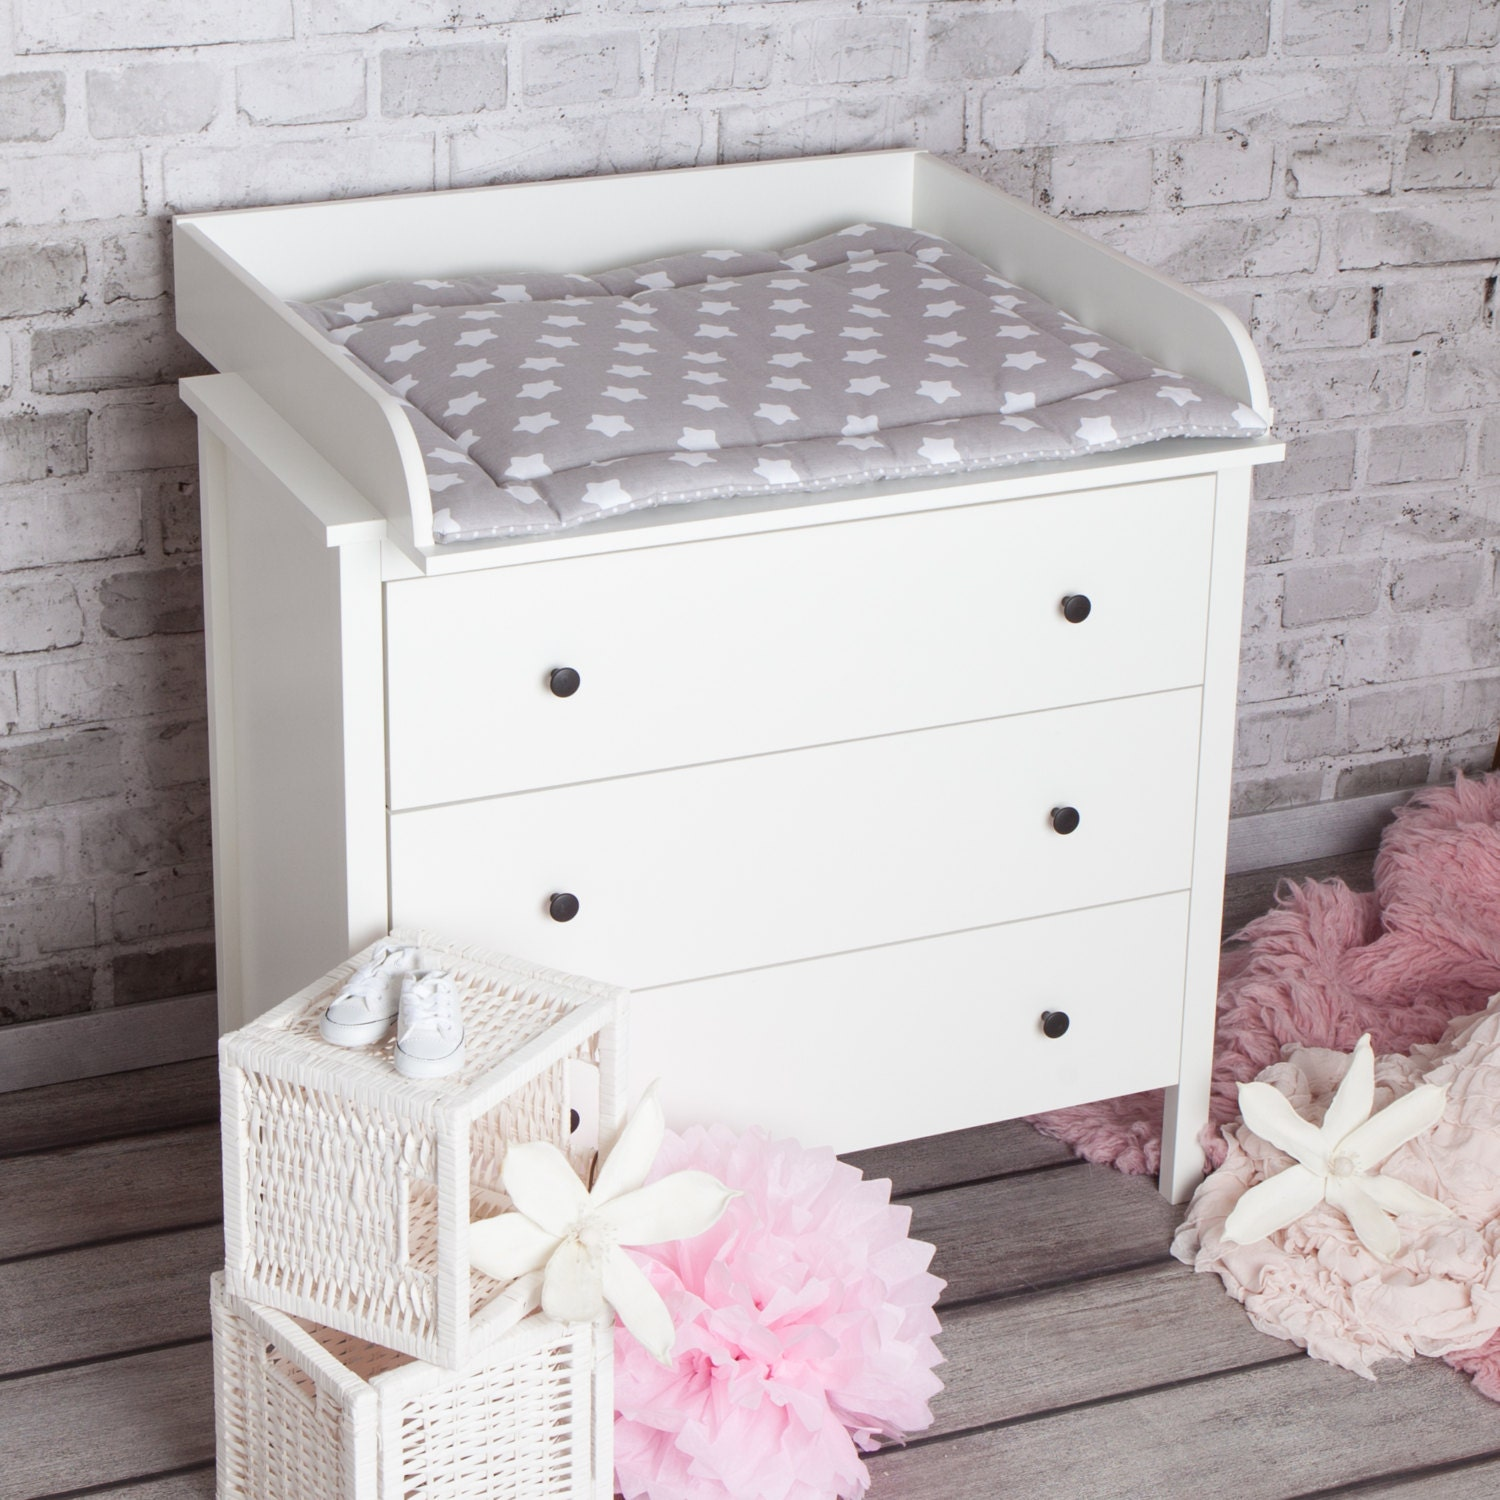 xs extraround changing table top for ikea koppang dresser. Black Bedroom Furniture Sets. Home Design Ideas